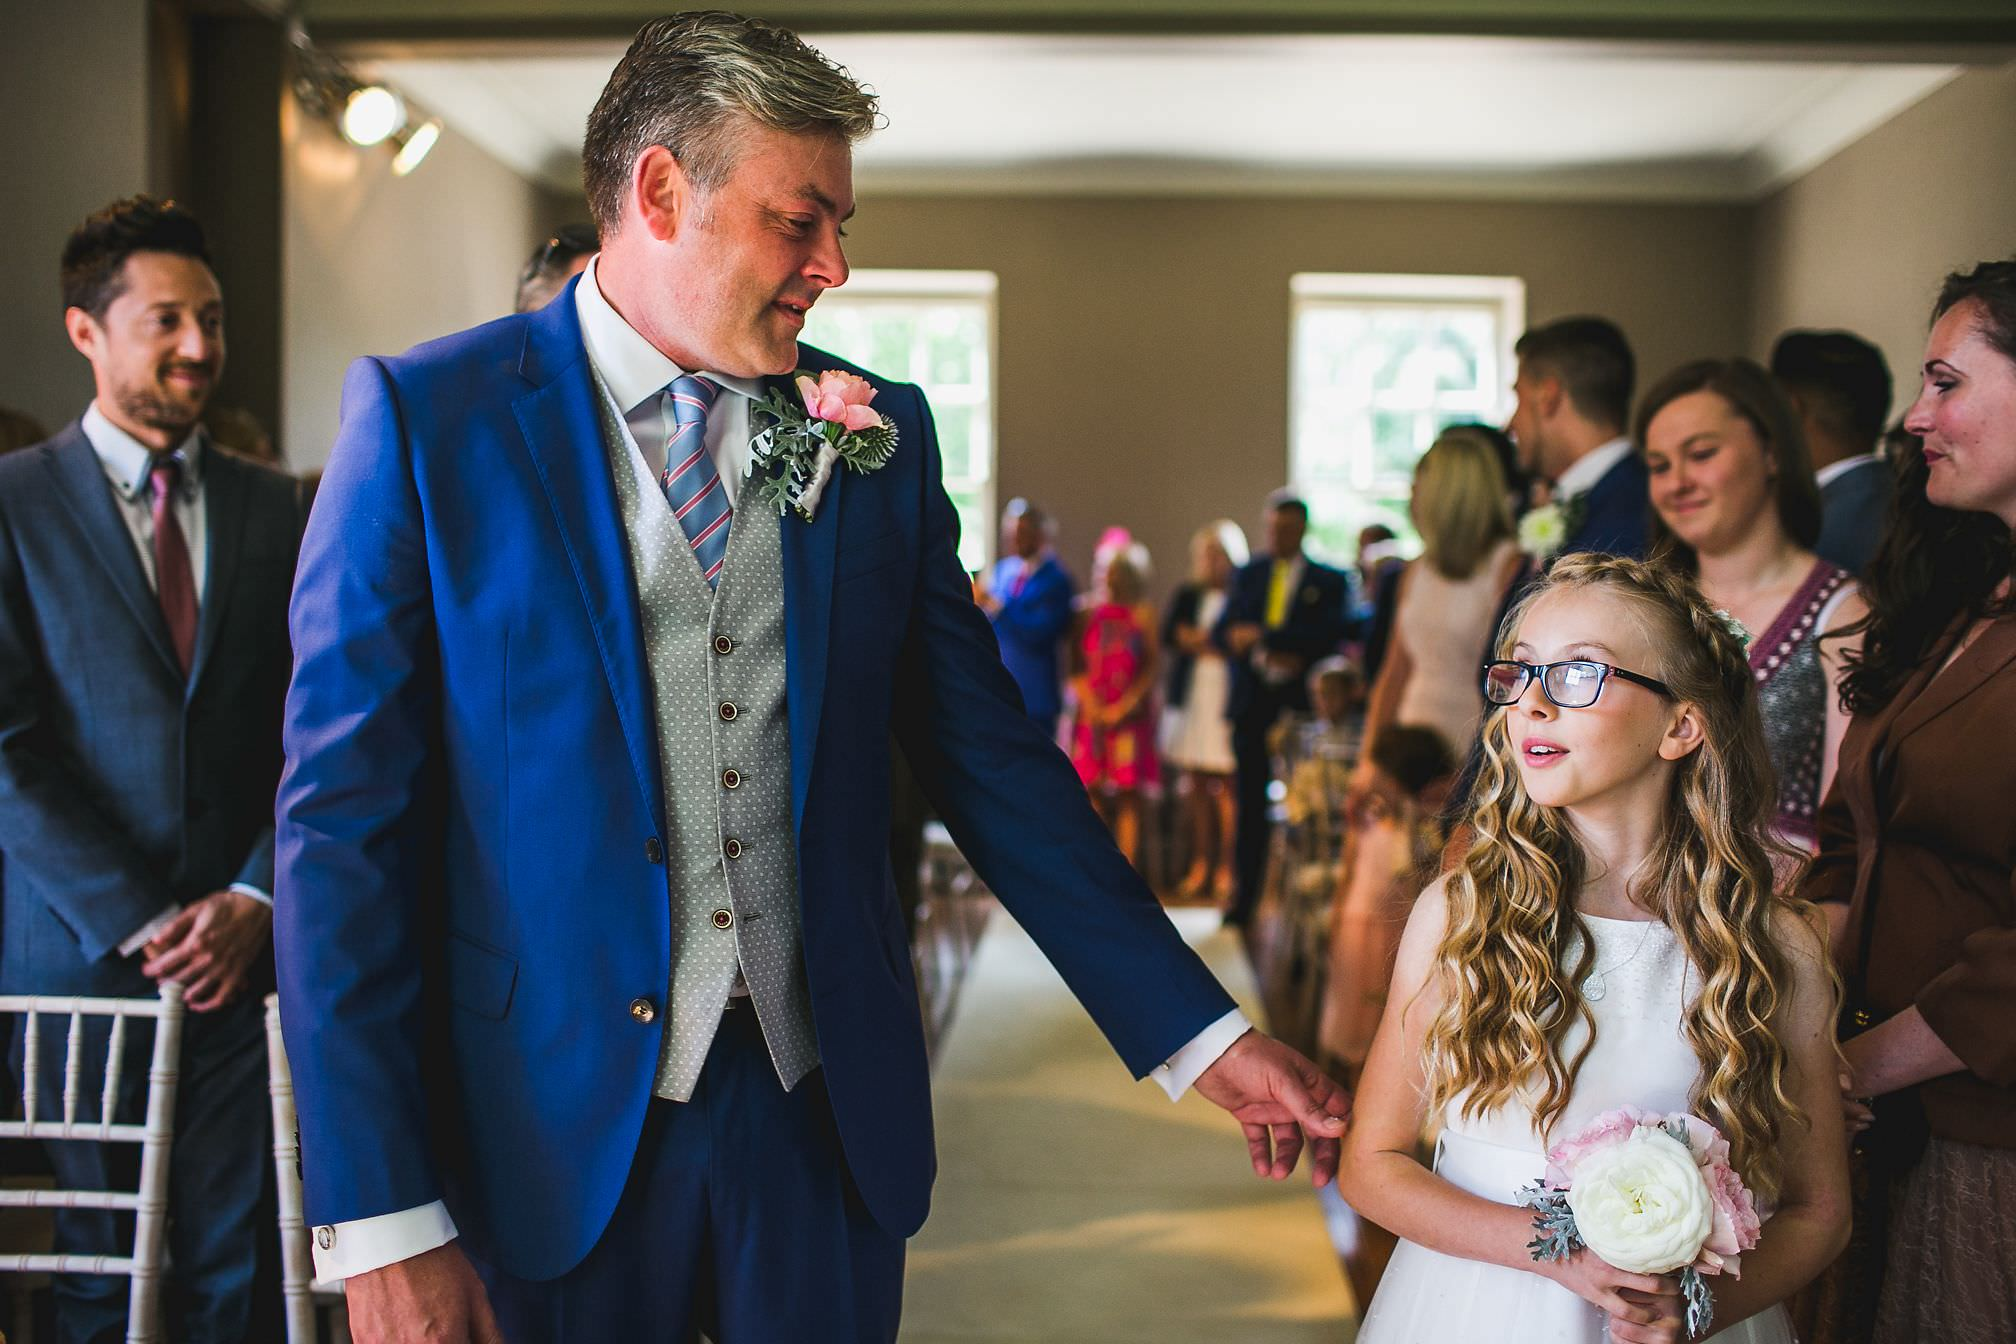 Emotional moment between Groom and Flower Girl